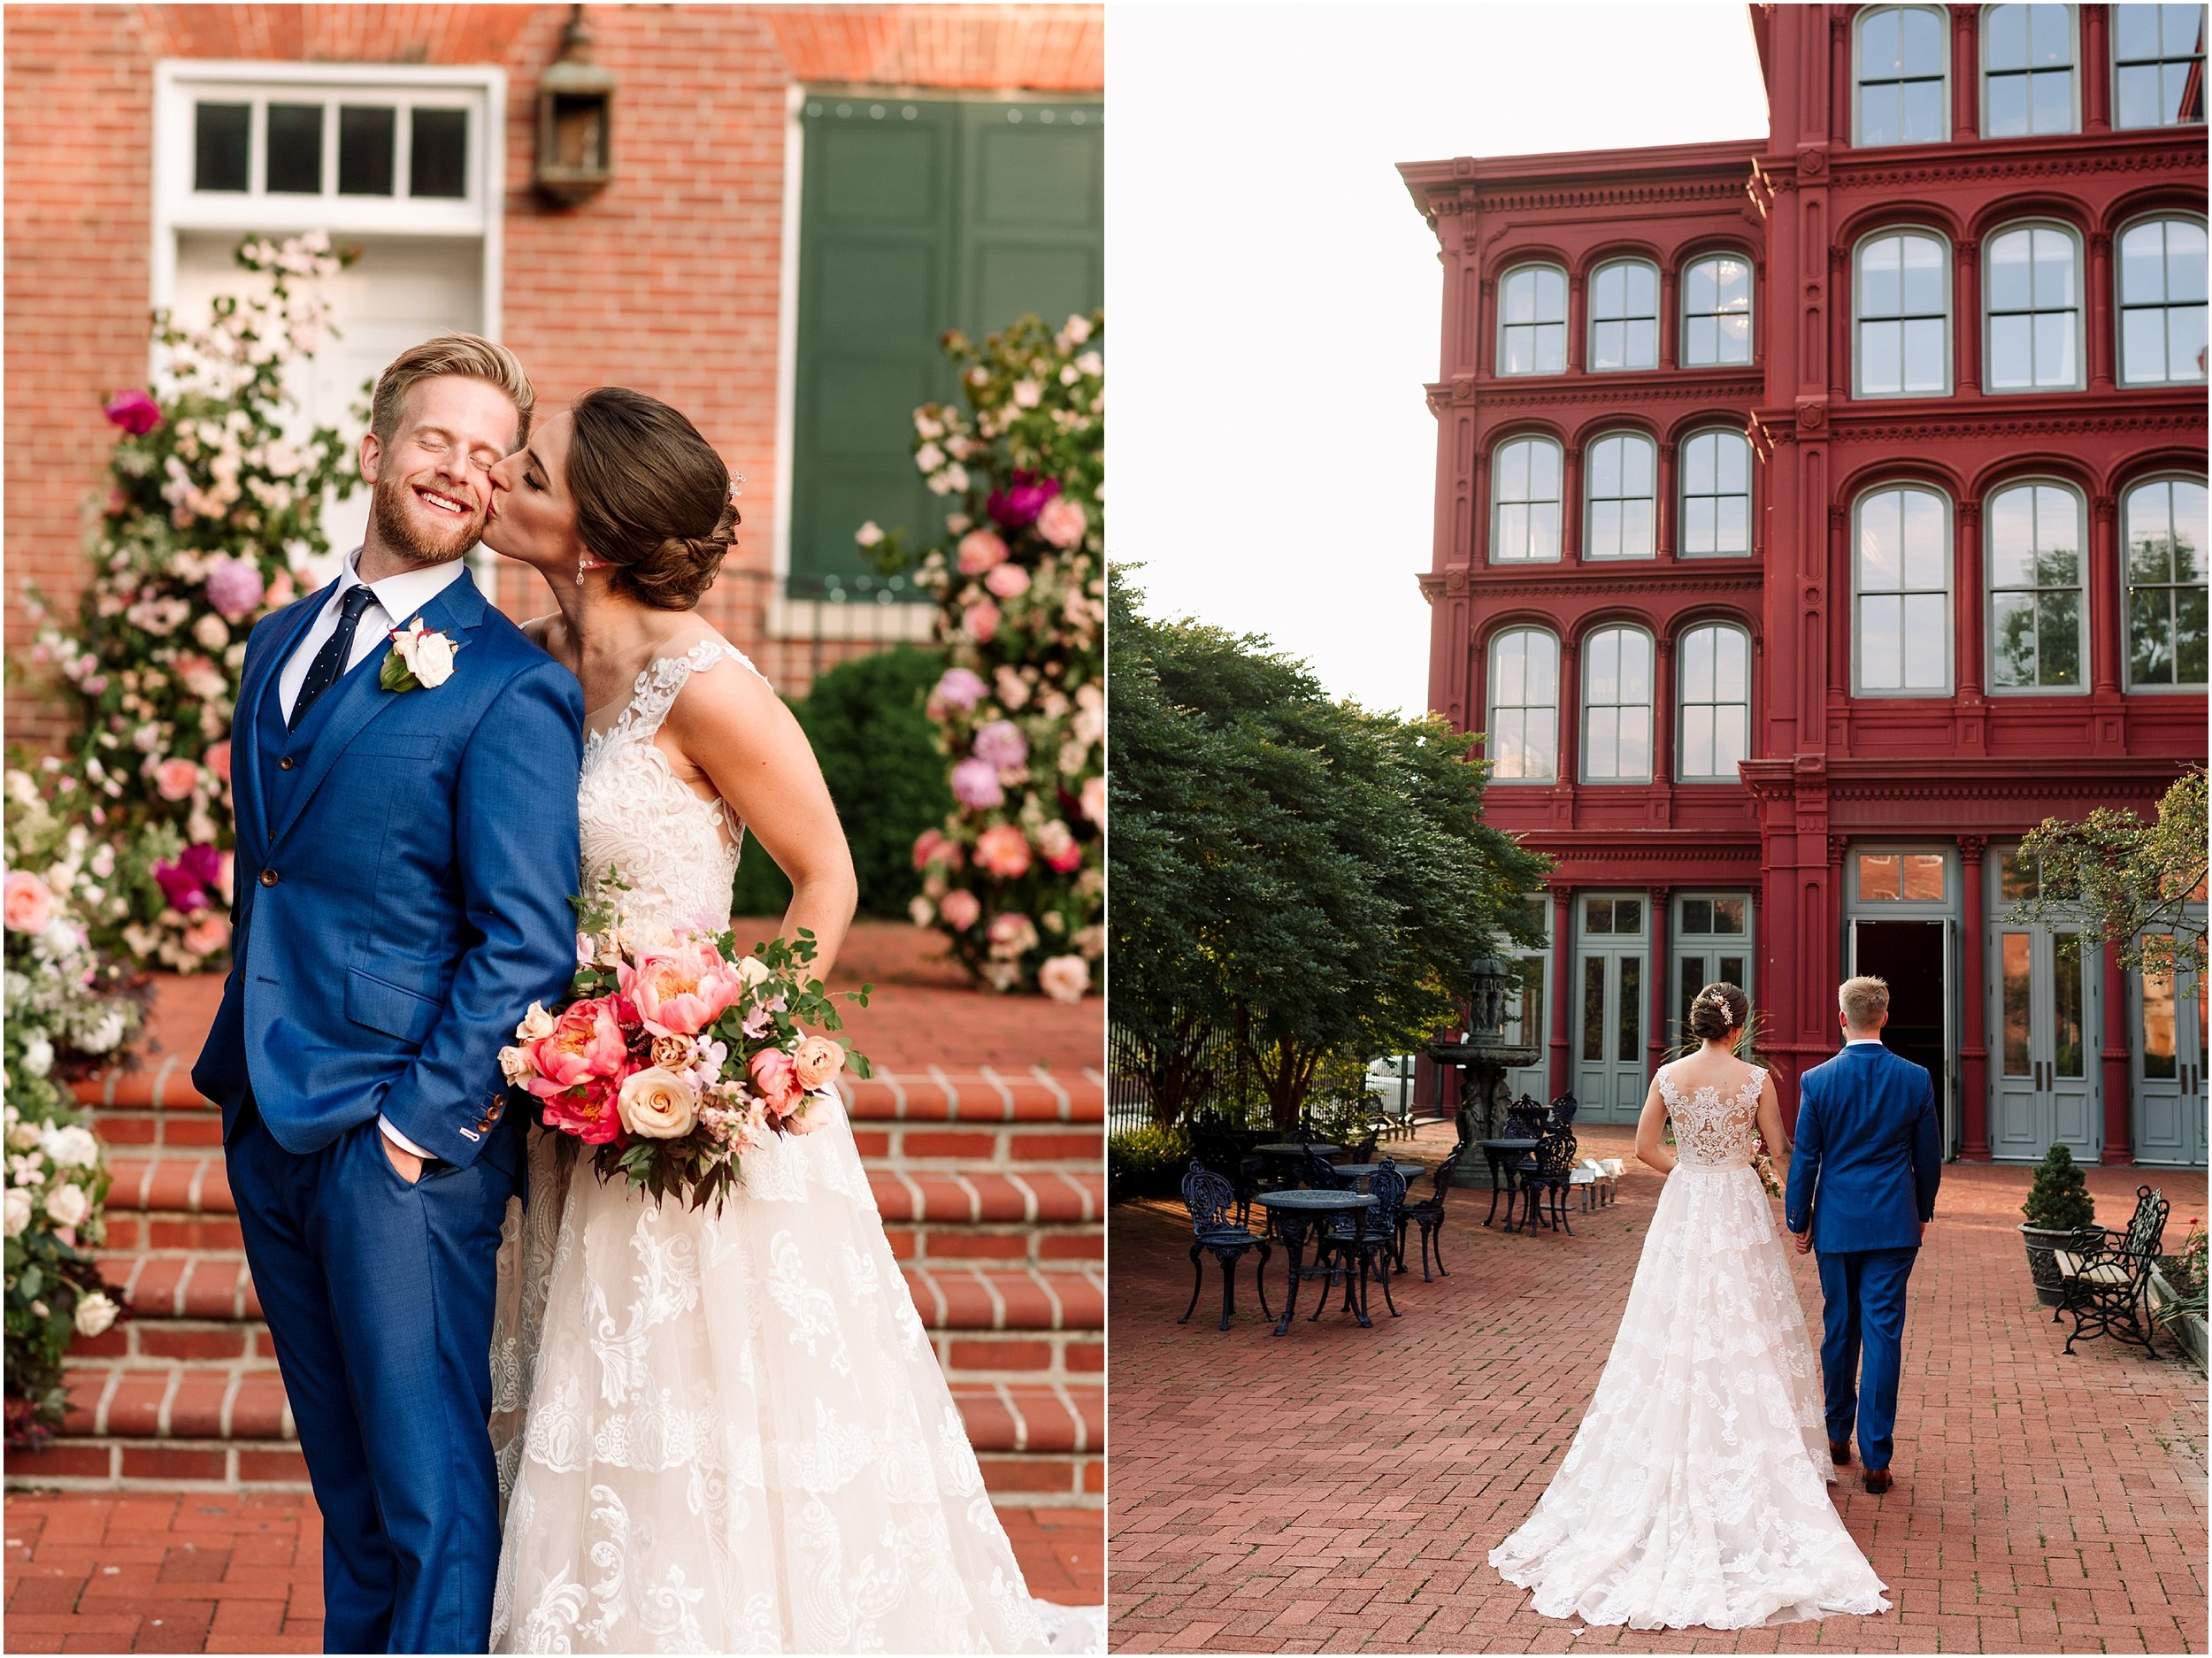 hannah leigh photography 1840s plaza wedding baltimore md_0076.jpg